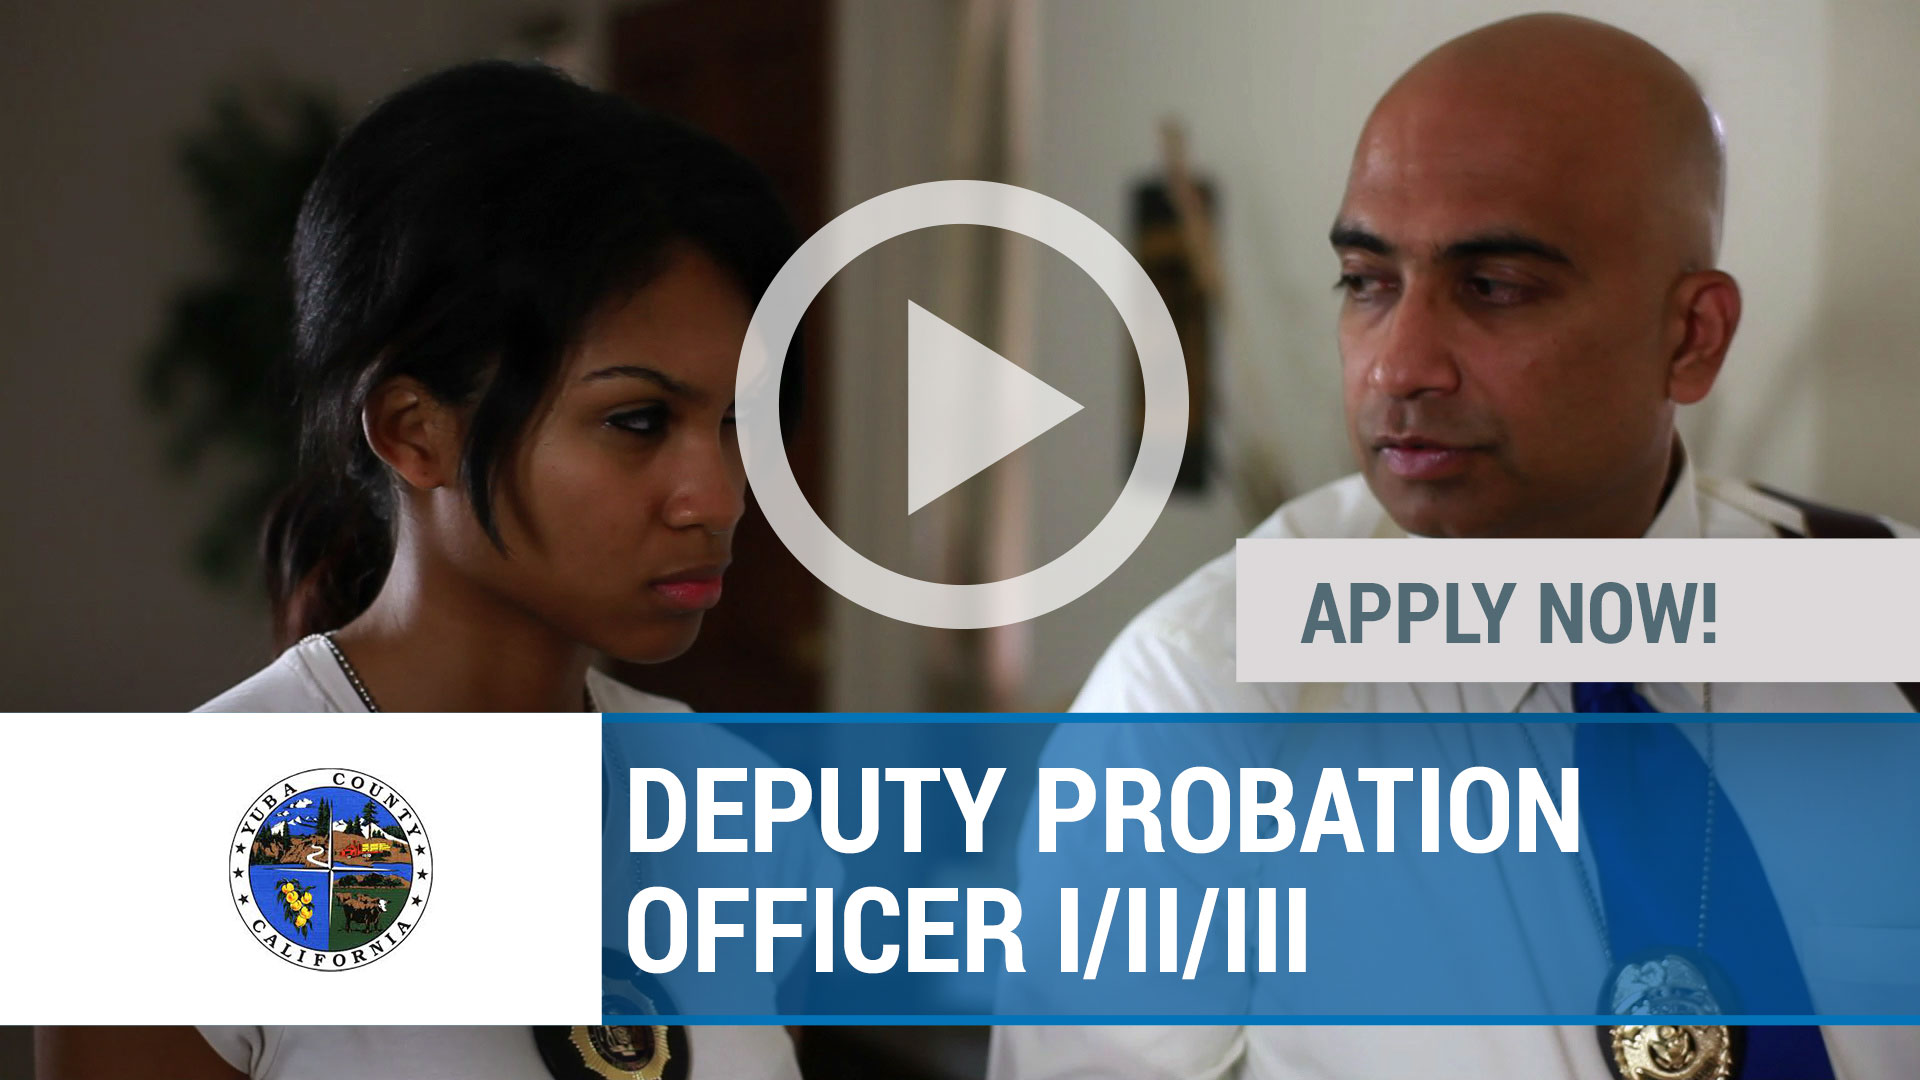 Watch our careers video for available job opening DEPUTY PROBATION OFFICER I_II_III in Marysville, CA, USA